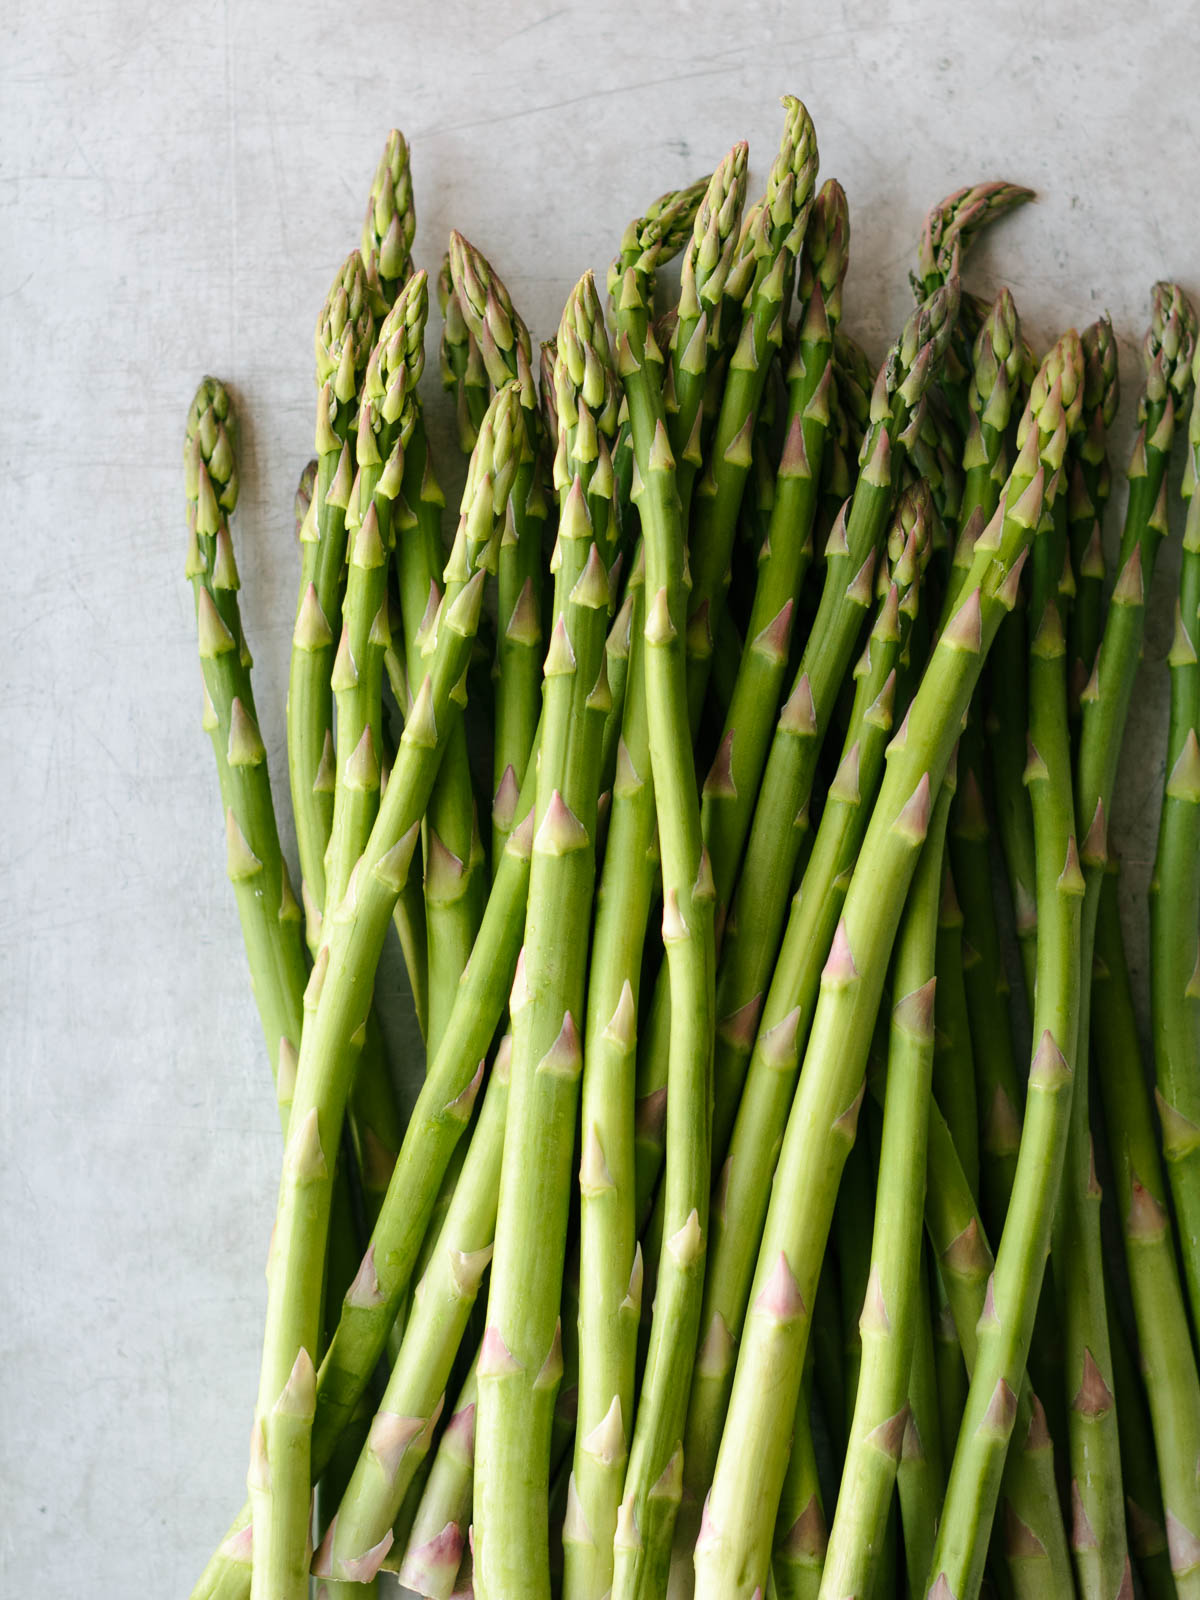 a pile of tender spring asparagus on a sheet pan